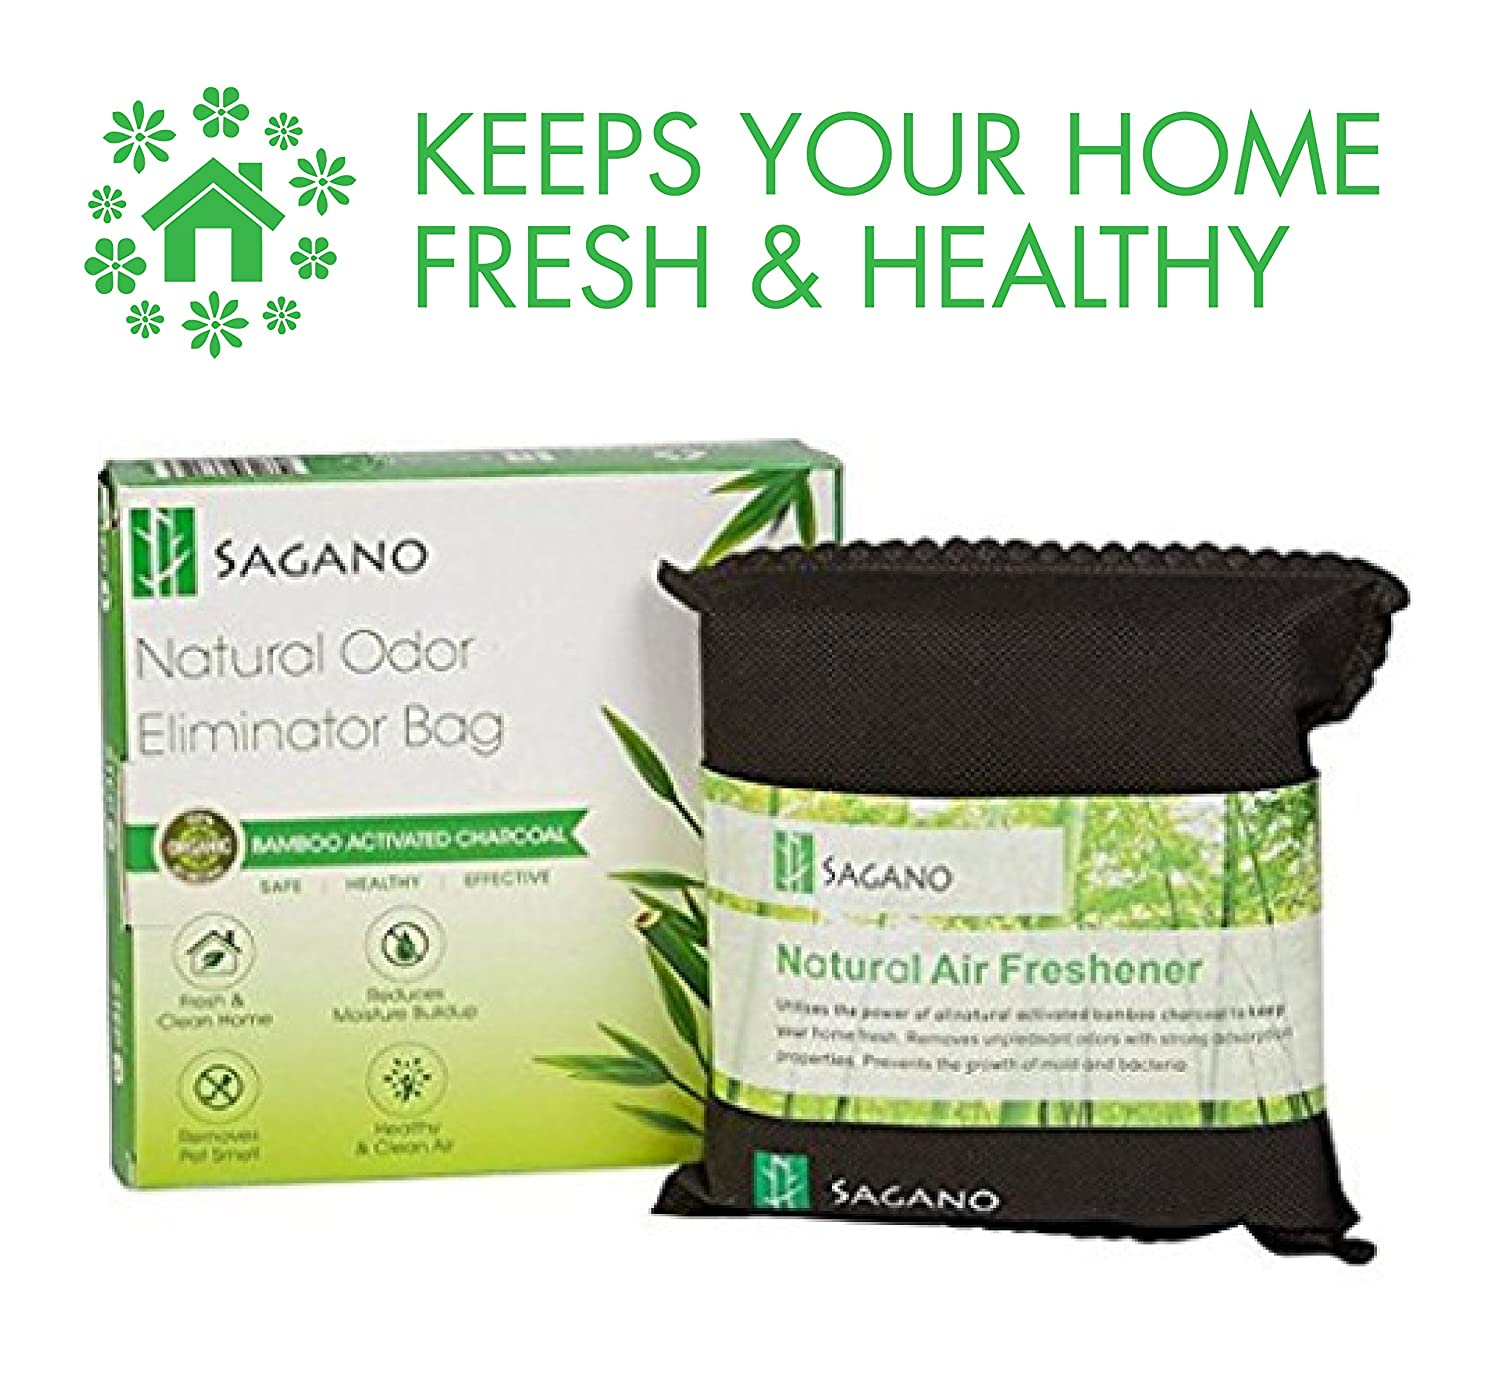 Best Activated Charcoal Odour Eliminator Bag By Sagano - 200gram Bag - Car, Closet Air Freshener and Pet Odour Remover - Powerful and Natural Activated Charcoal To Keep Your Home Fresh and Healthy No Model